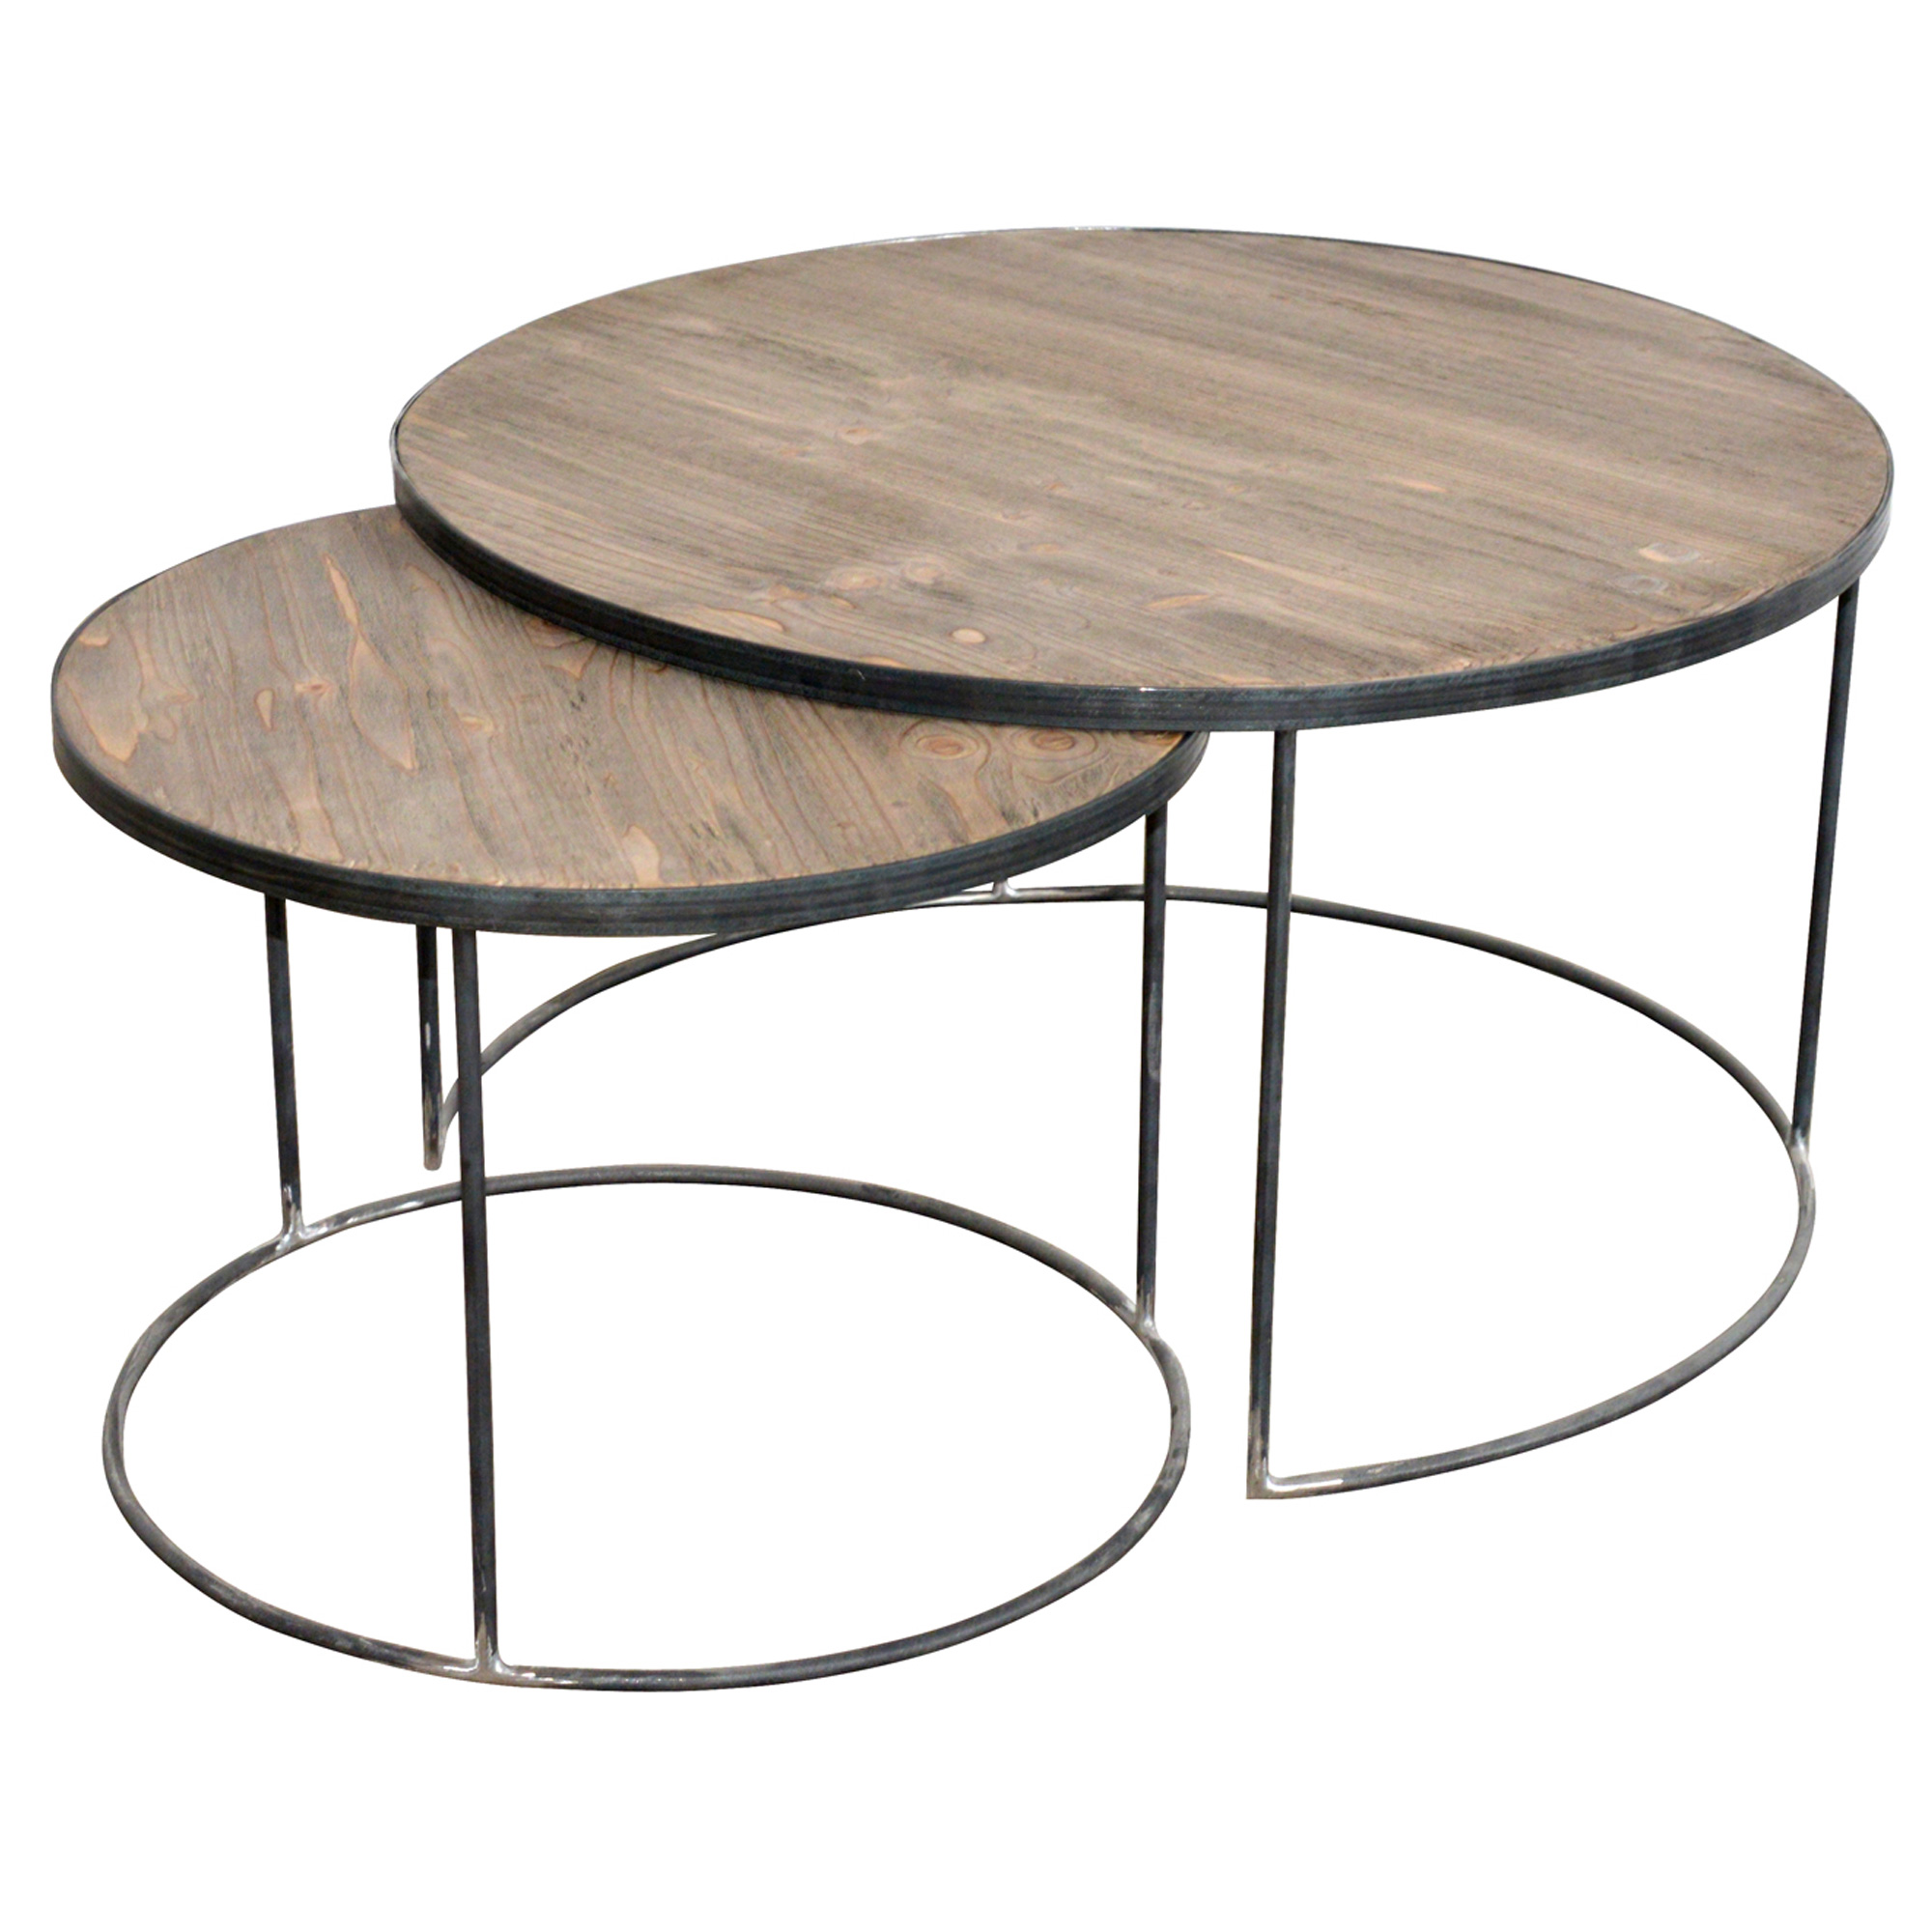 Circle coffee table bestsciaticatreatmentscom for Two small tables instead of coffee table